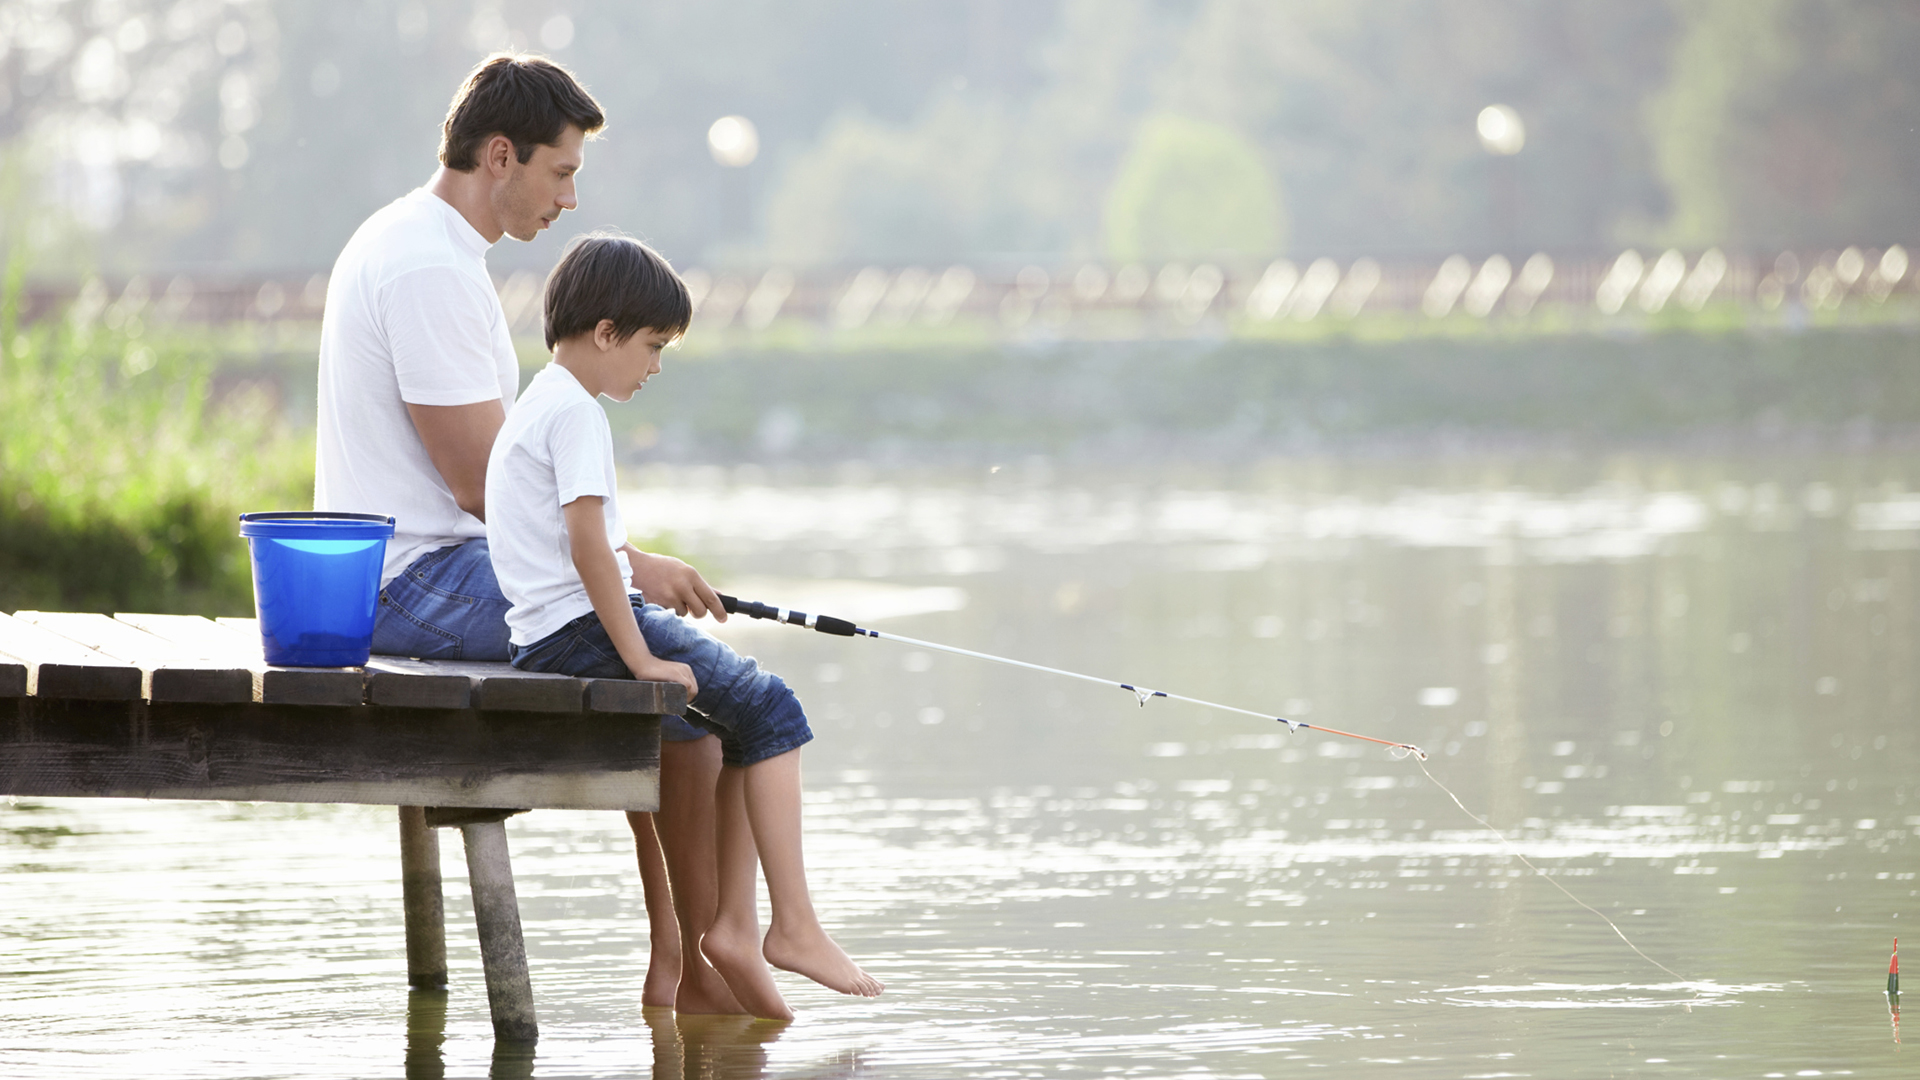 Father and son fishing | Sheknows.com